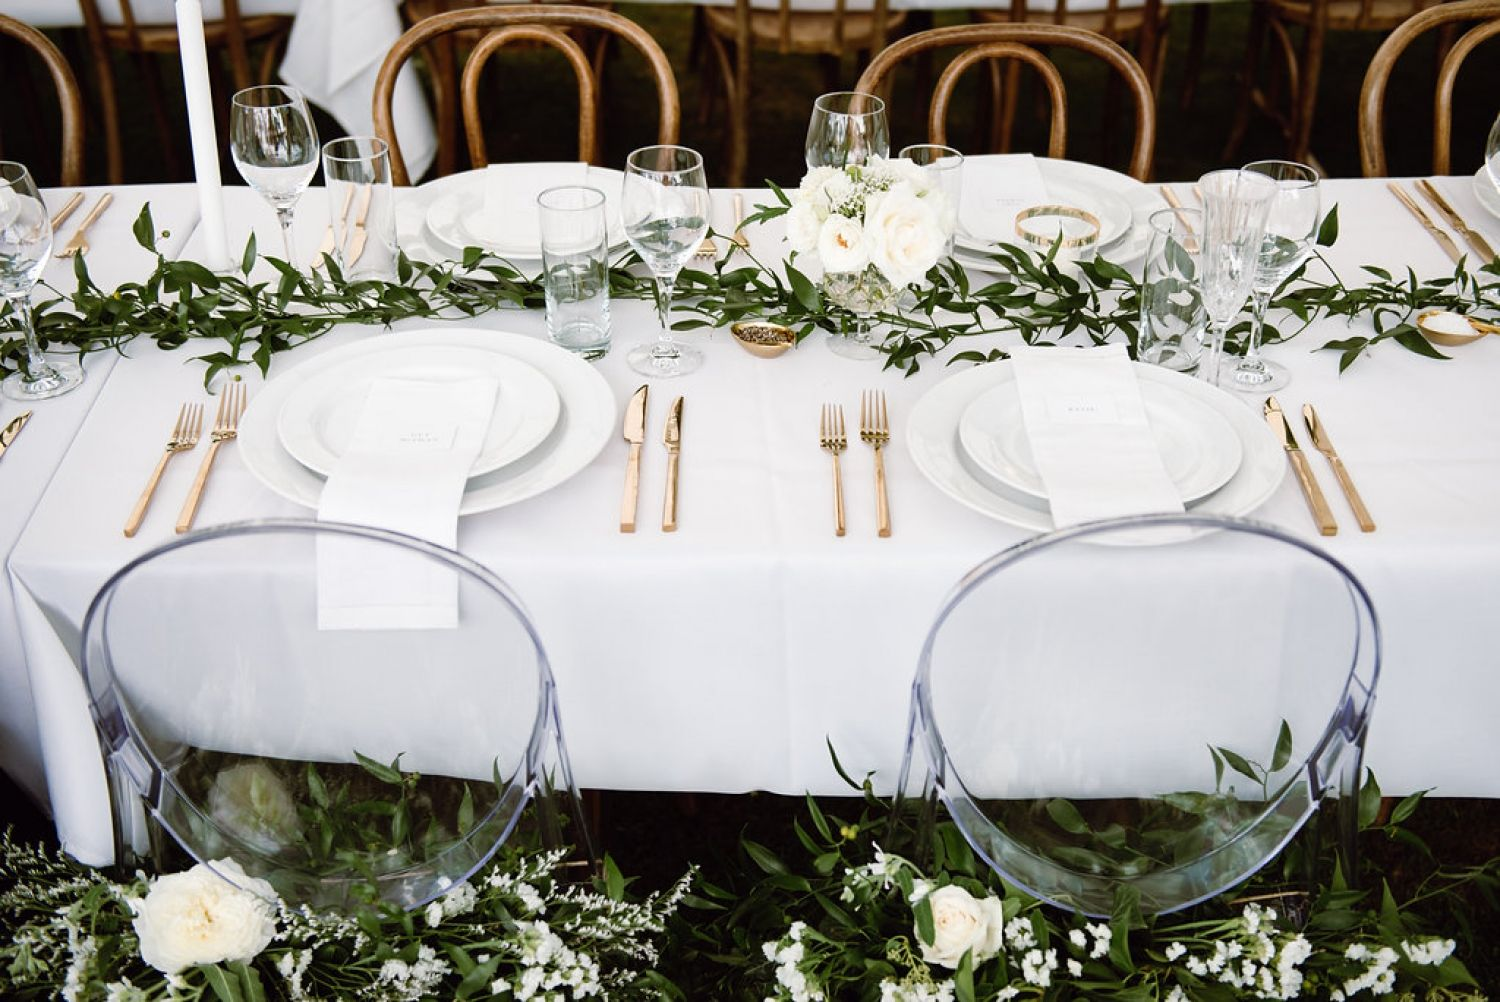 Wedding decor with ghost chairs  FOR THE RECEPTION  Long white tables with bentwood chairs ghost